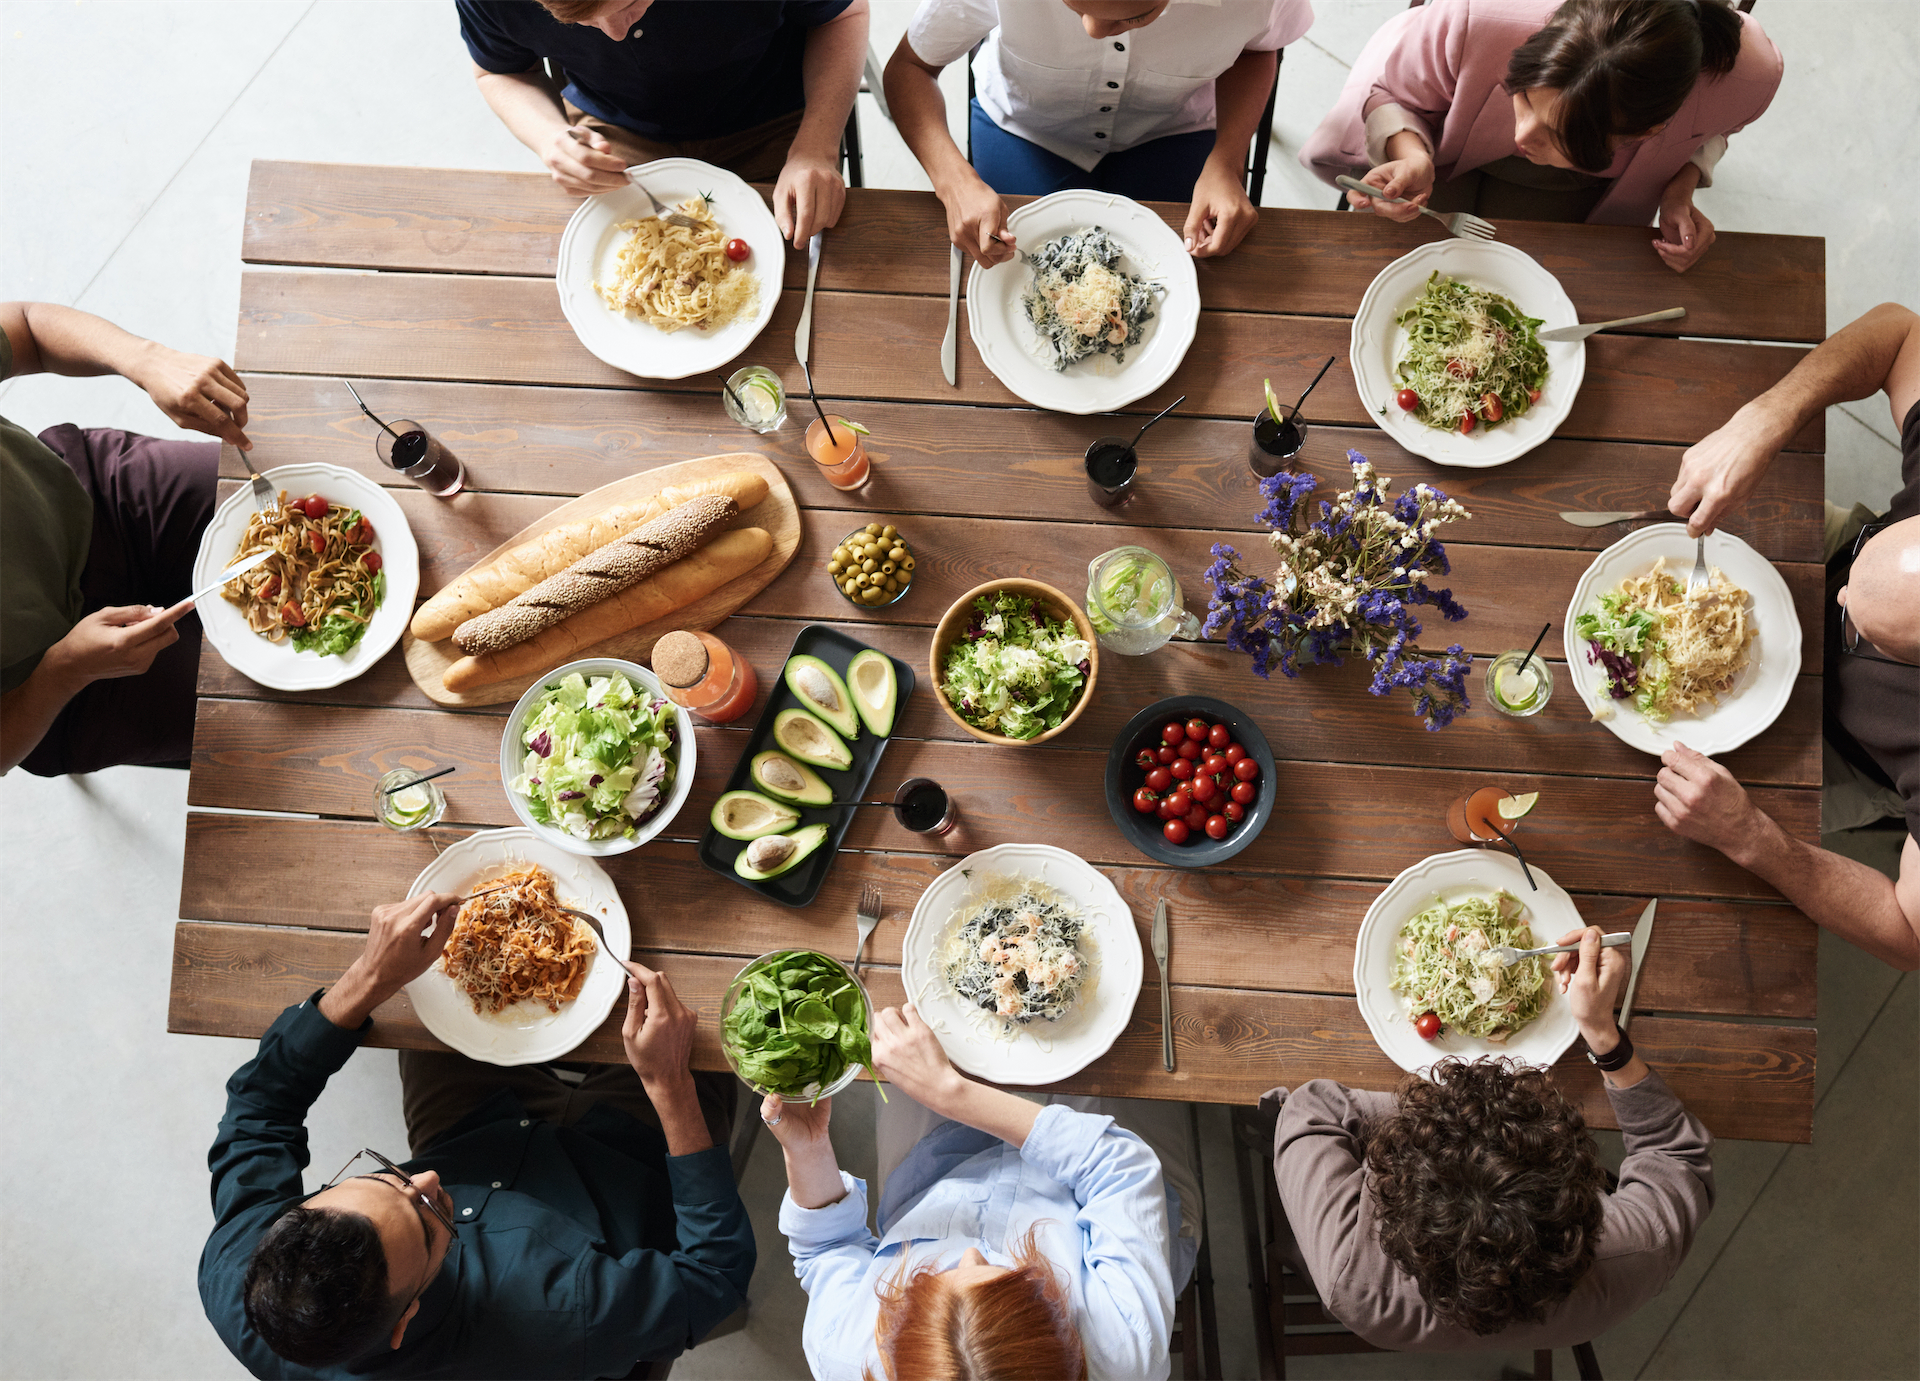 friends gathering for healthy food and company